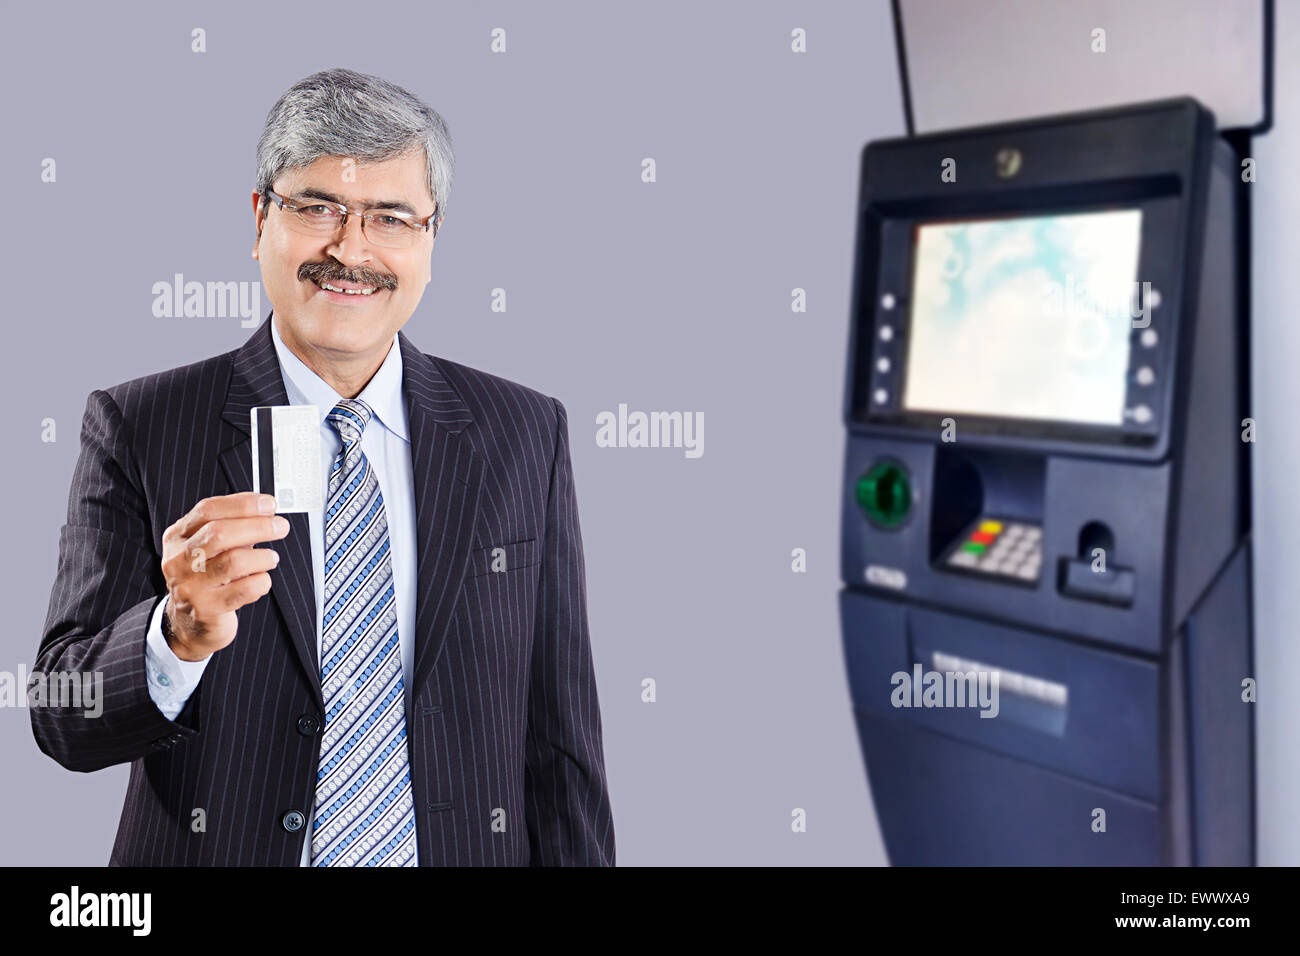 Cash advance machine atm stock photos cash advance machine atm 1 indian business man credit card showing stock image reheart Images